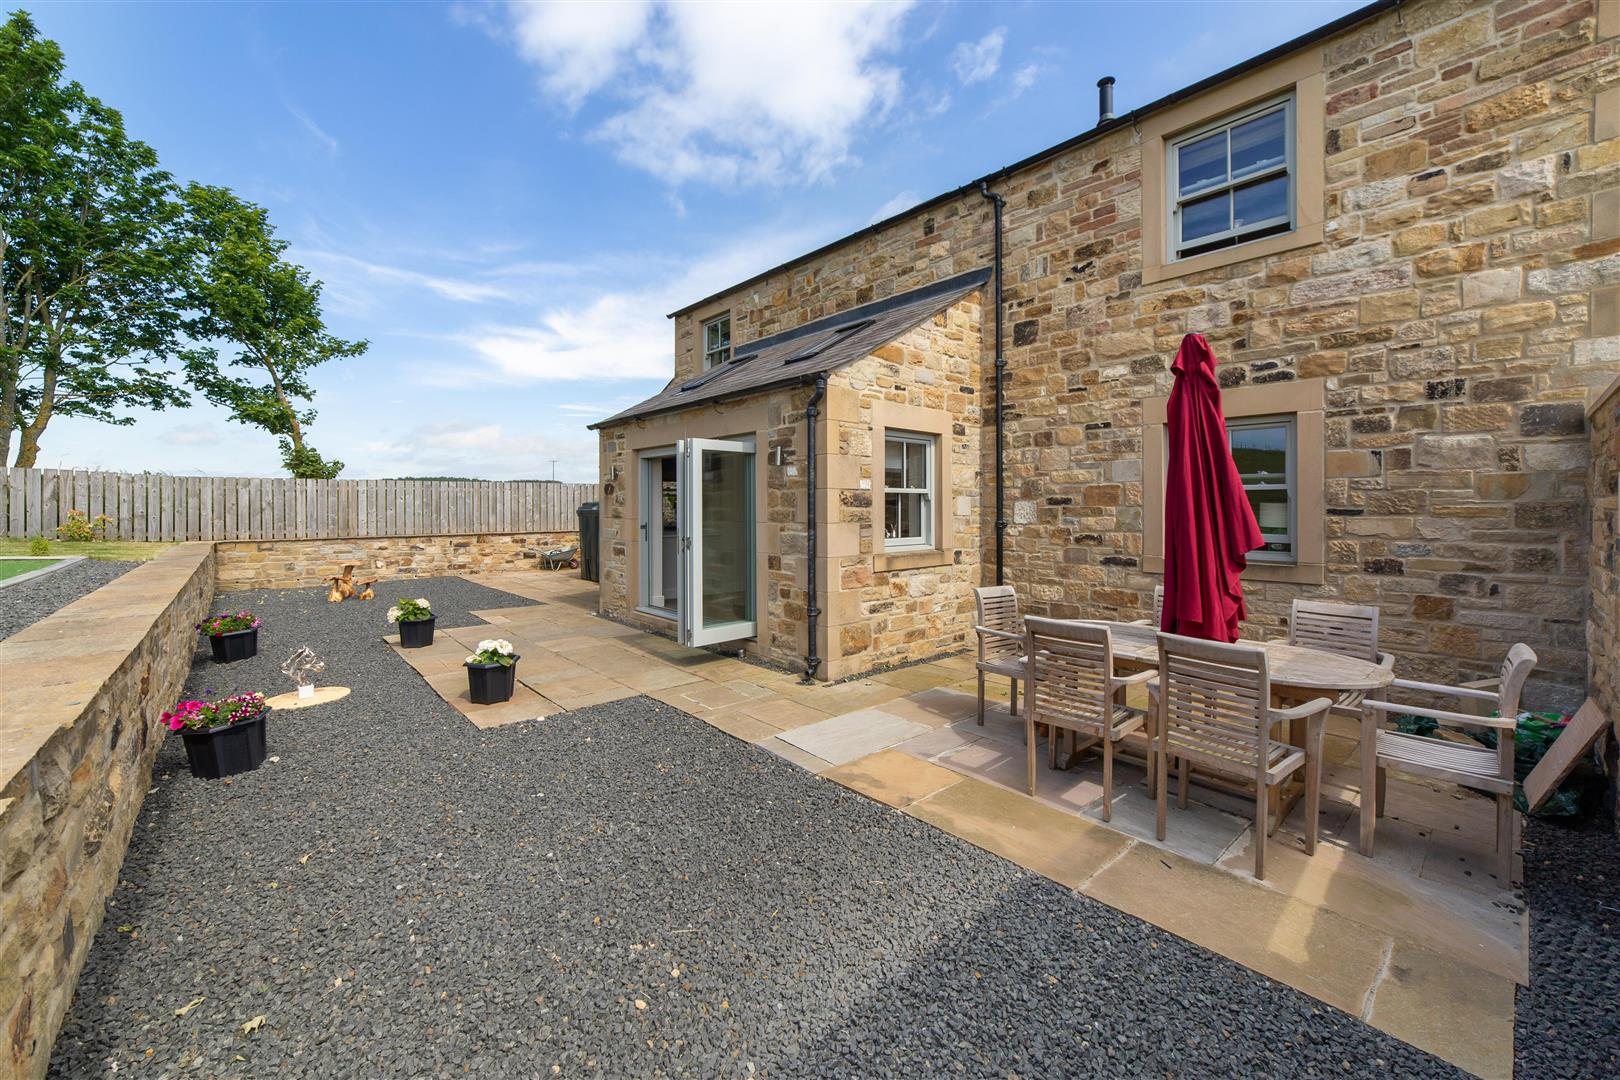 4 bed detached house for sale, Hexham 17